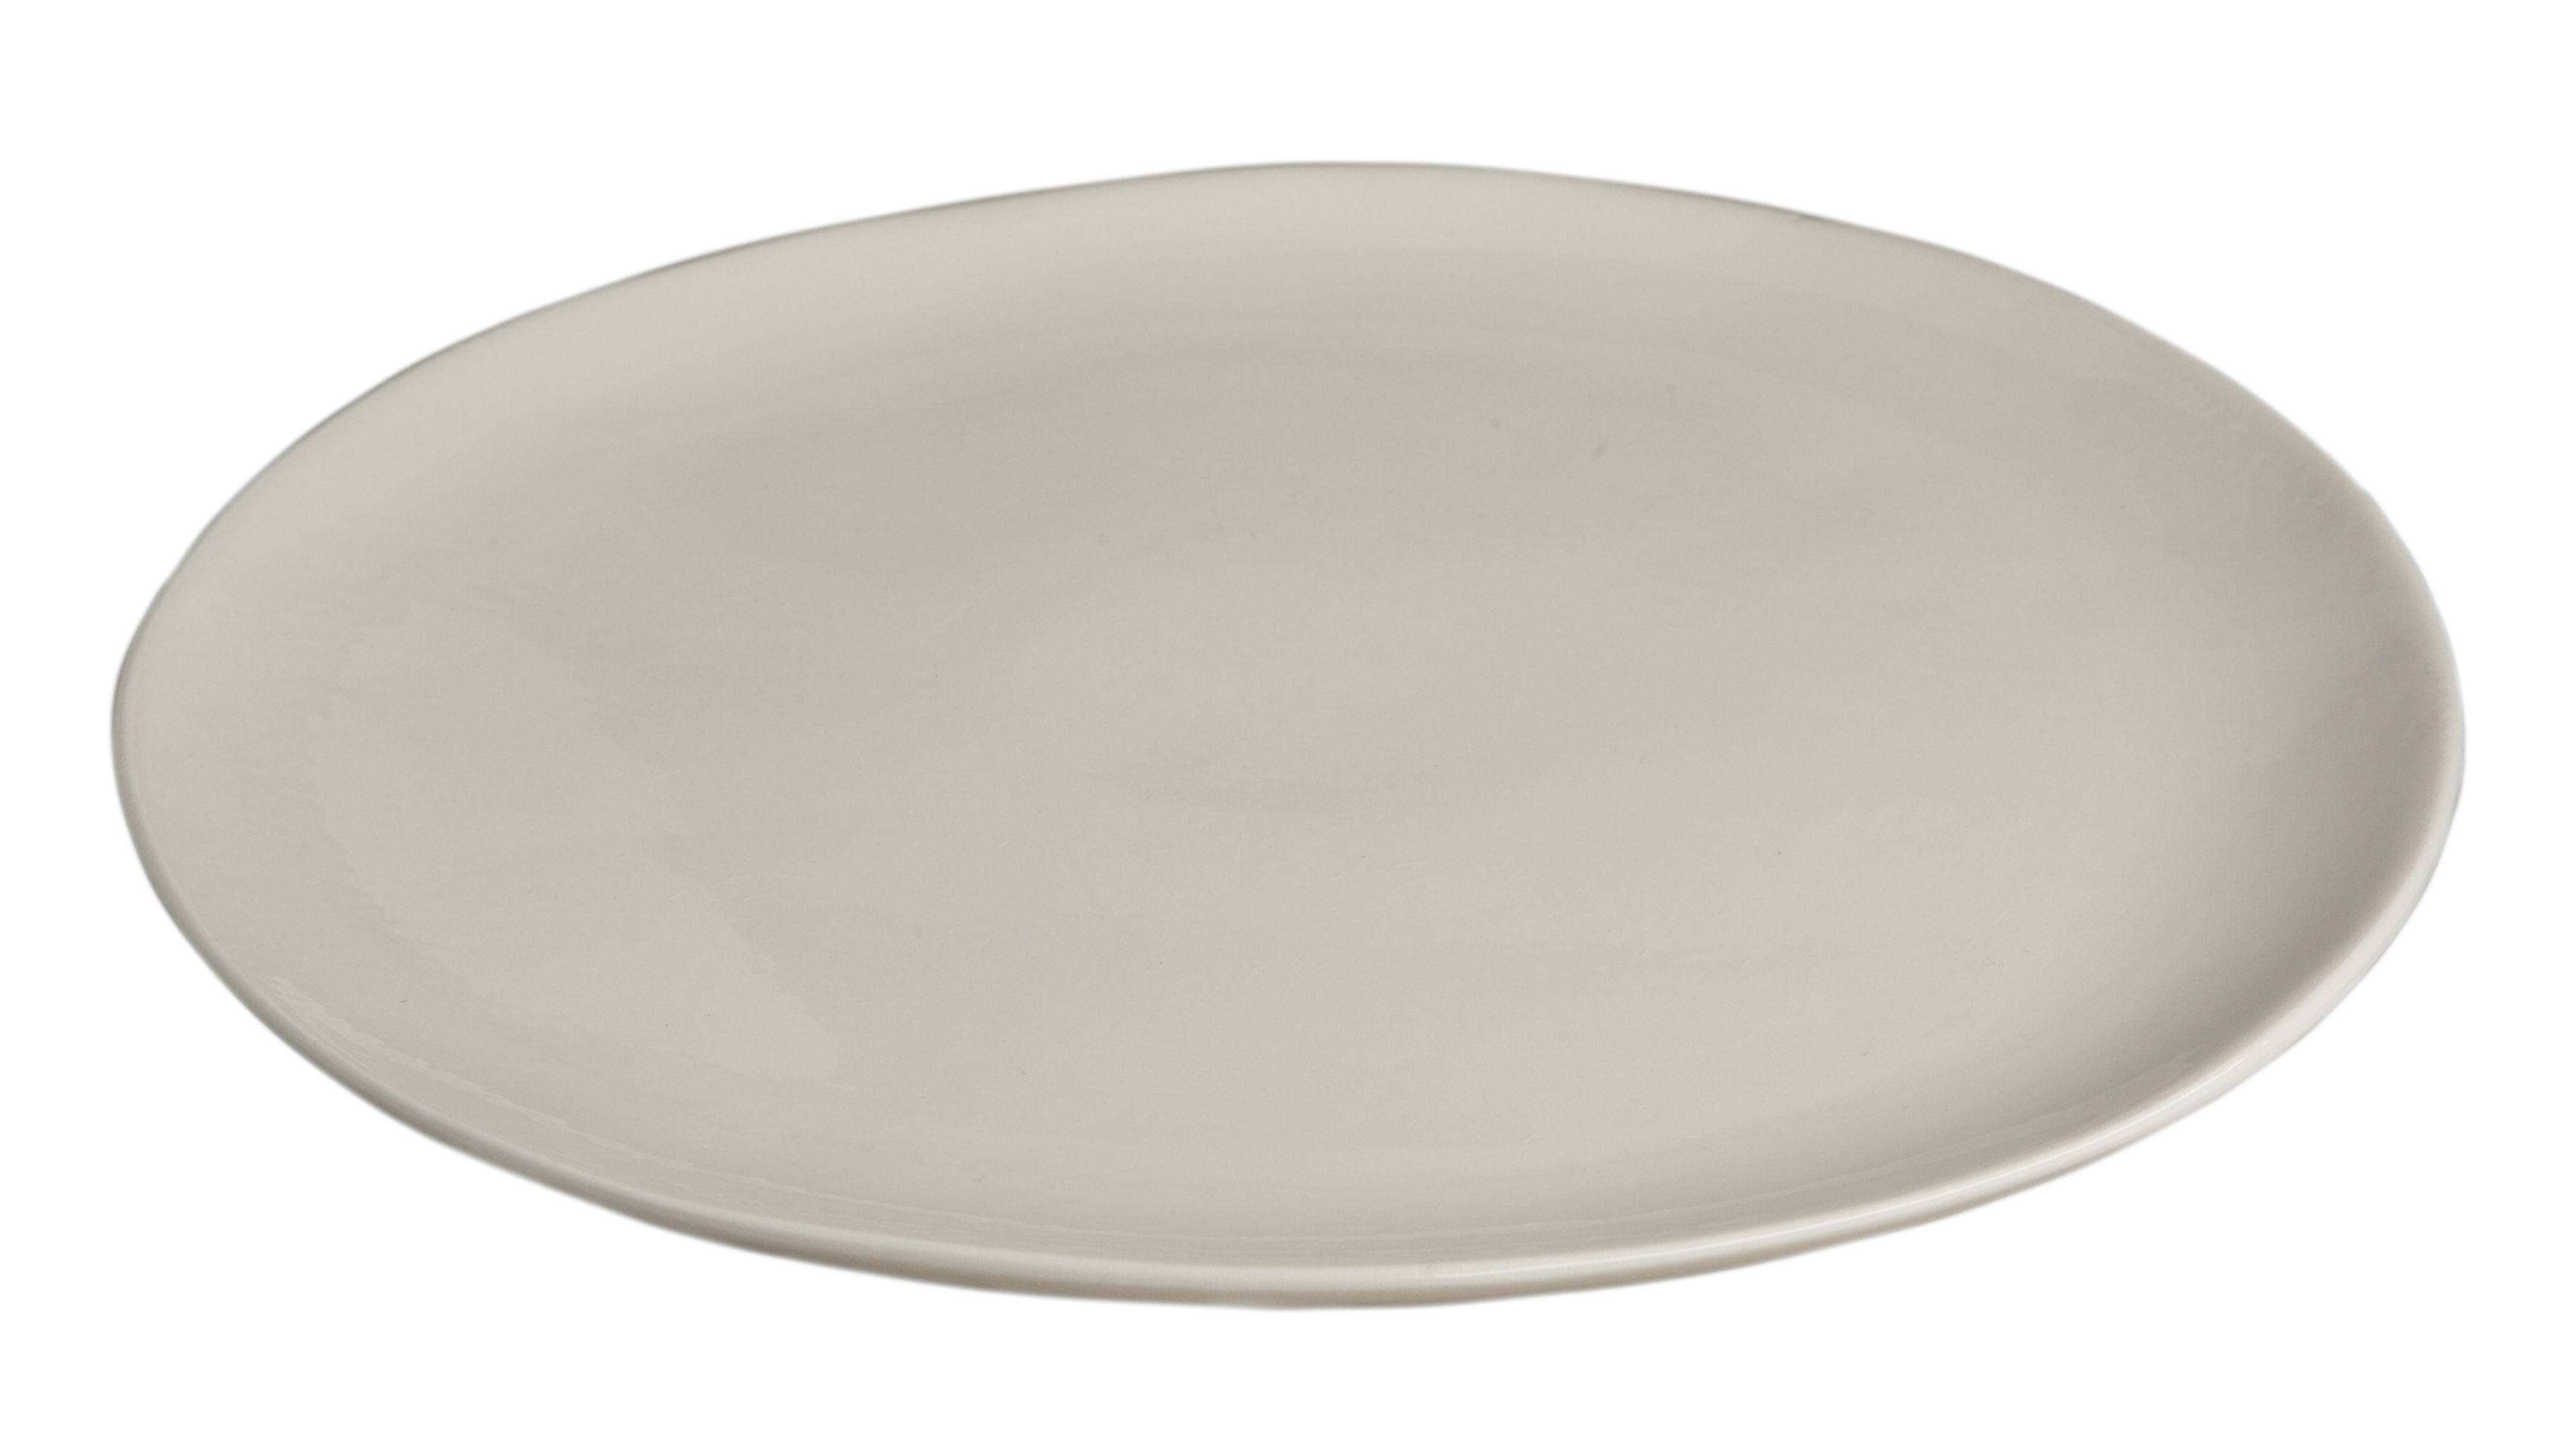 Tableware - Plates - Bazelaire Plate - Ø 26cm by Sentou Edition - Off white - Enamelled earthenware